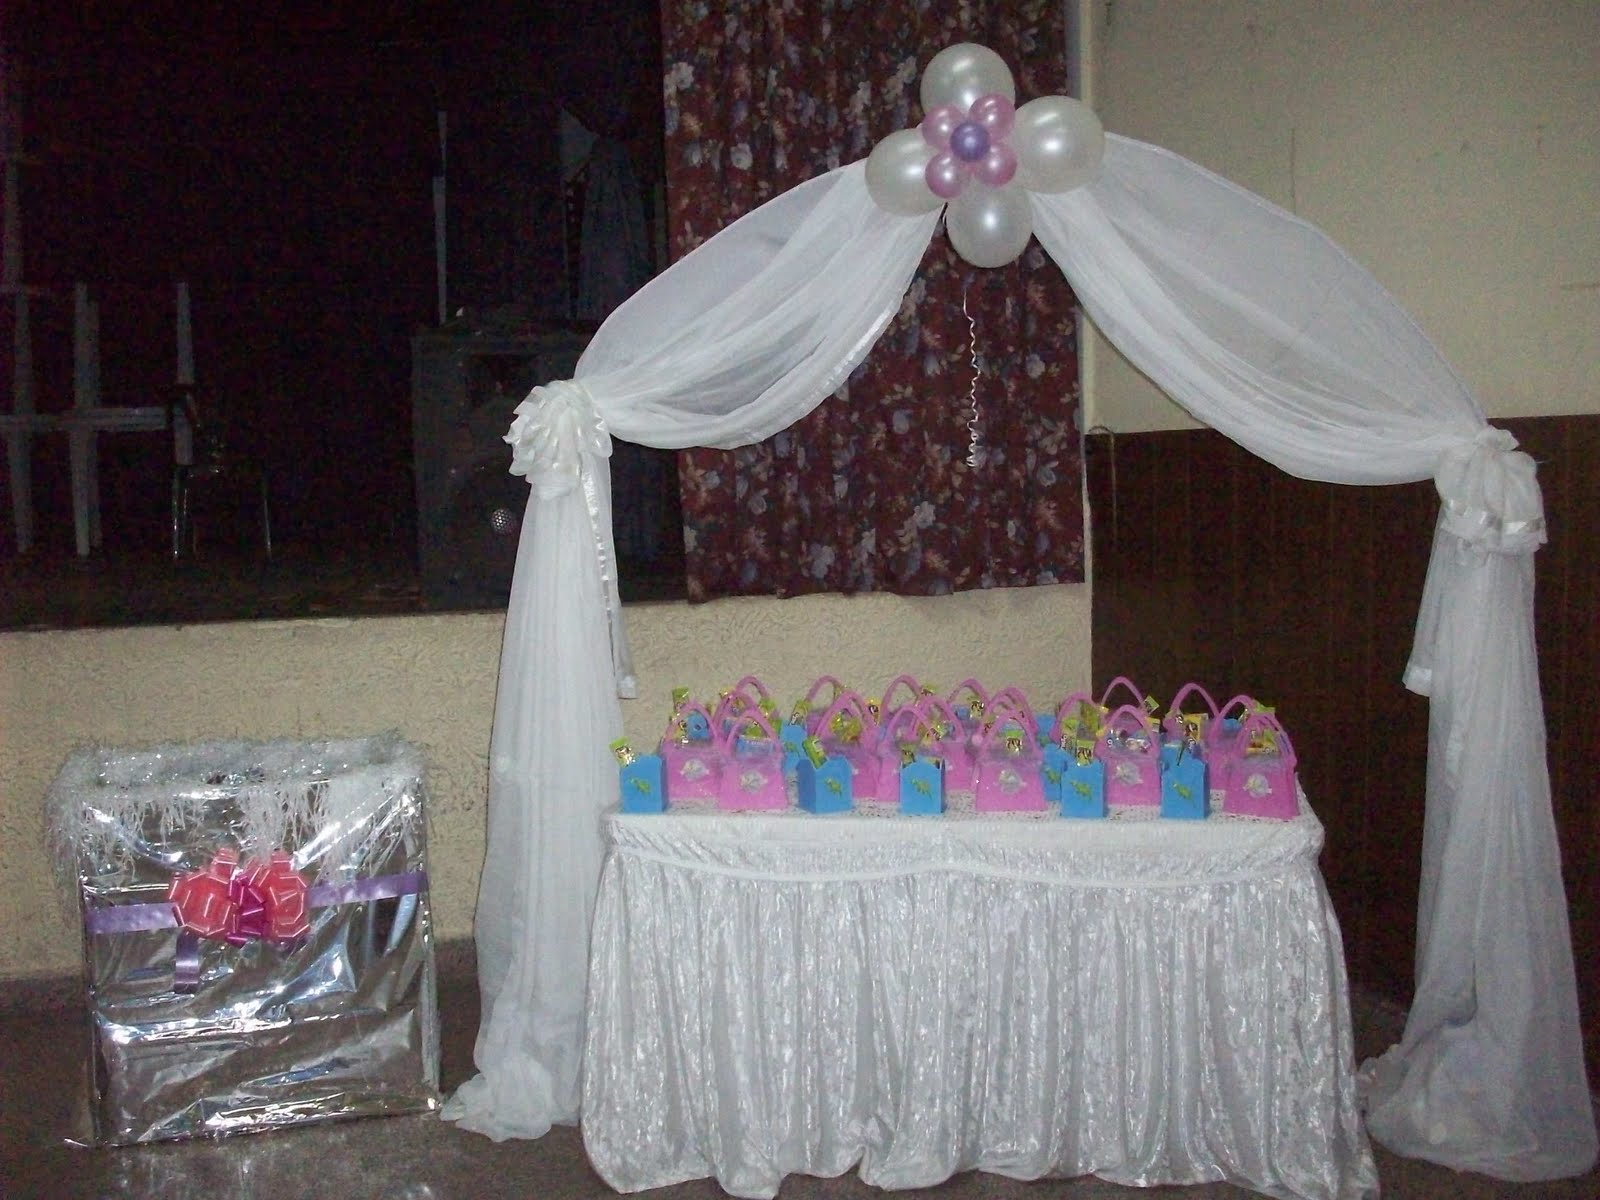 Como Decorar Un Local Para Matrimonio Kalú Decó Decoraciones Con Globos Y Telas